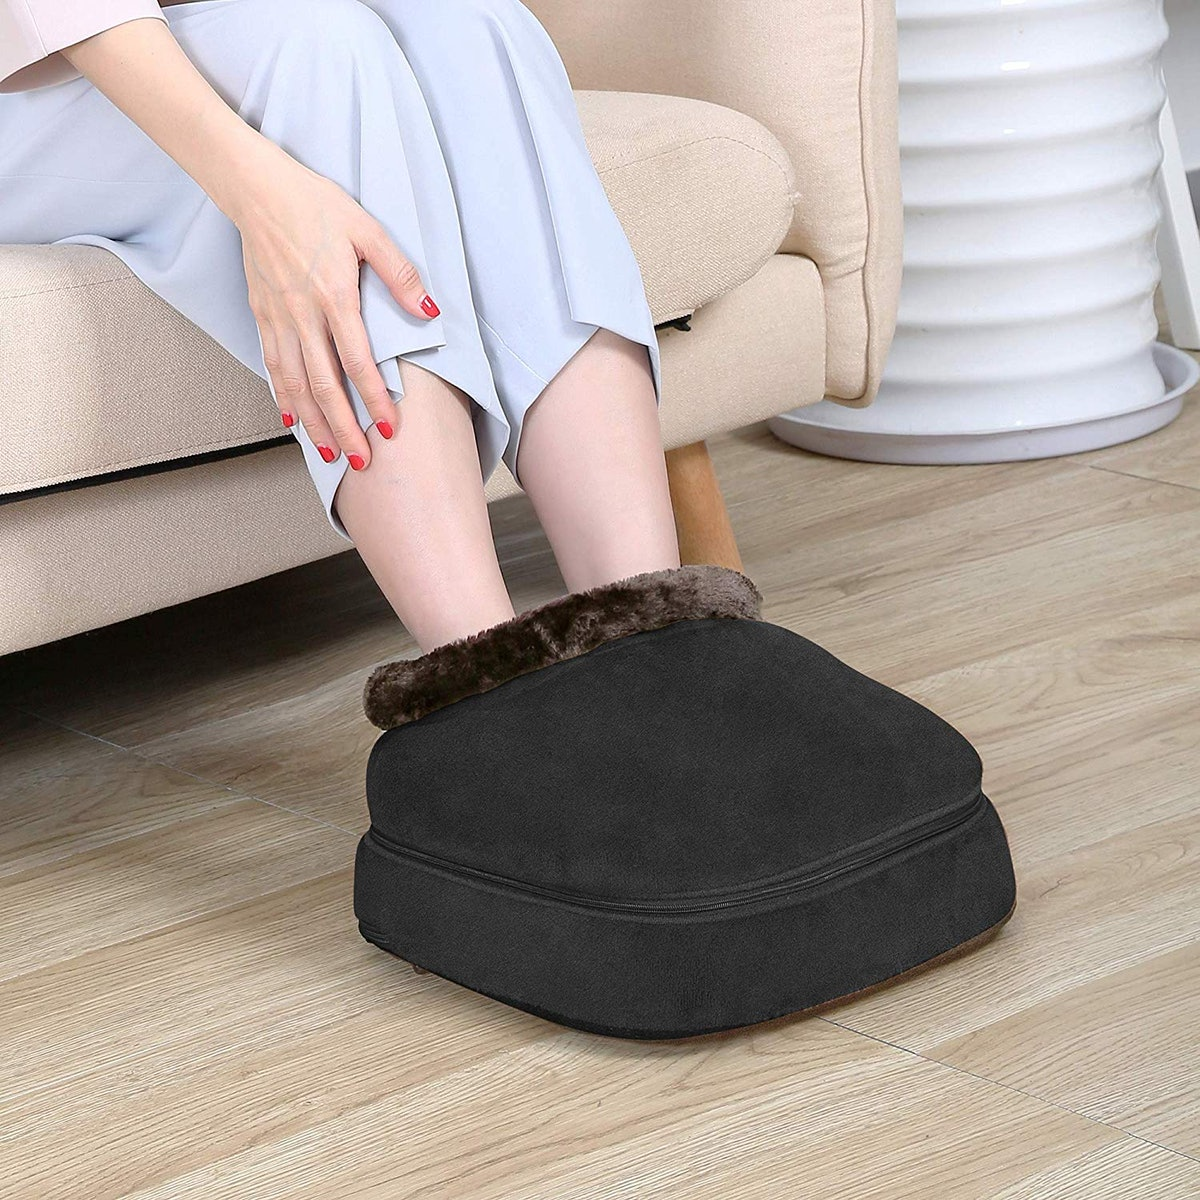 Snailax 3-in-1 Foot Warmer and Massager